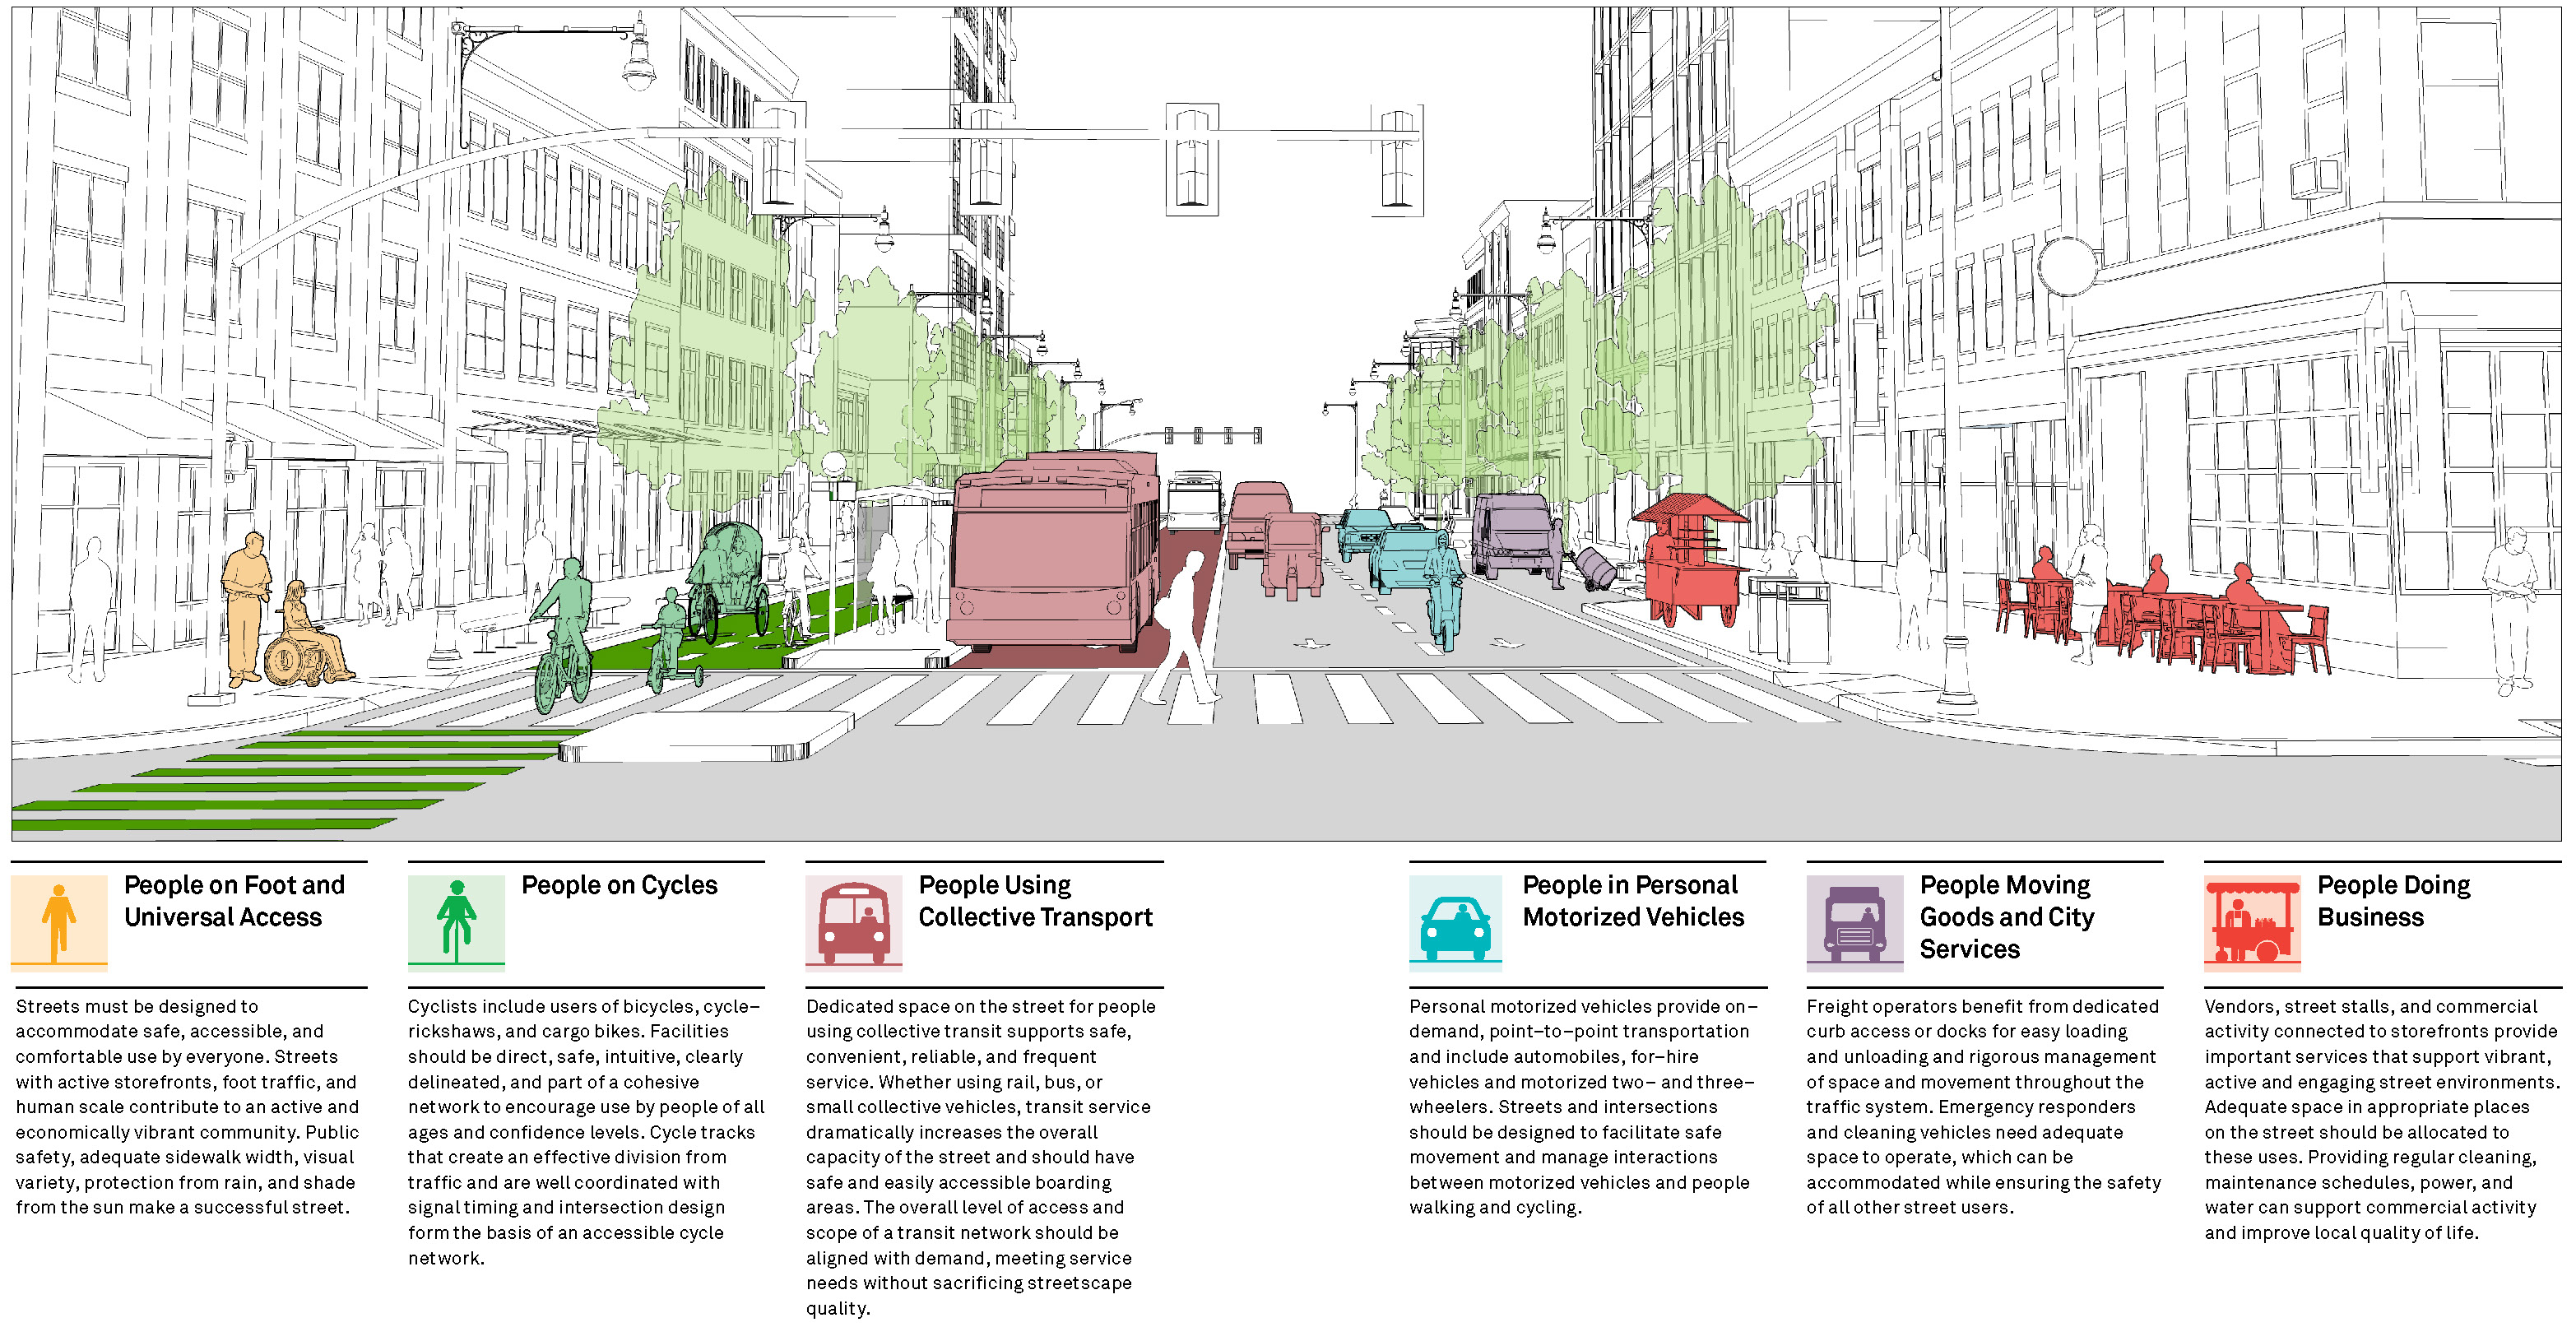 New Calendar System Analysis The Other Transit Crisis How To Improve The Nyc Bus Street Users Global Designing Cities Initiative